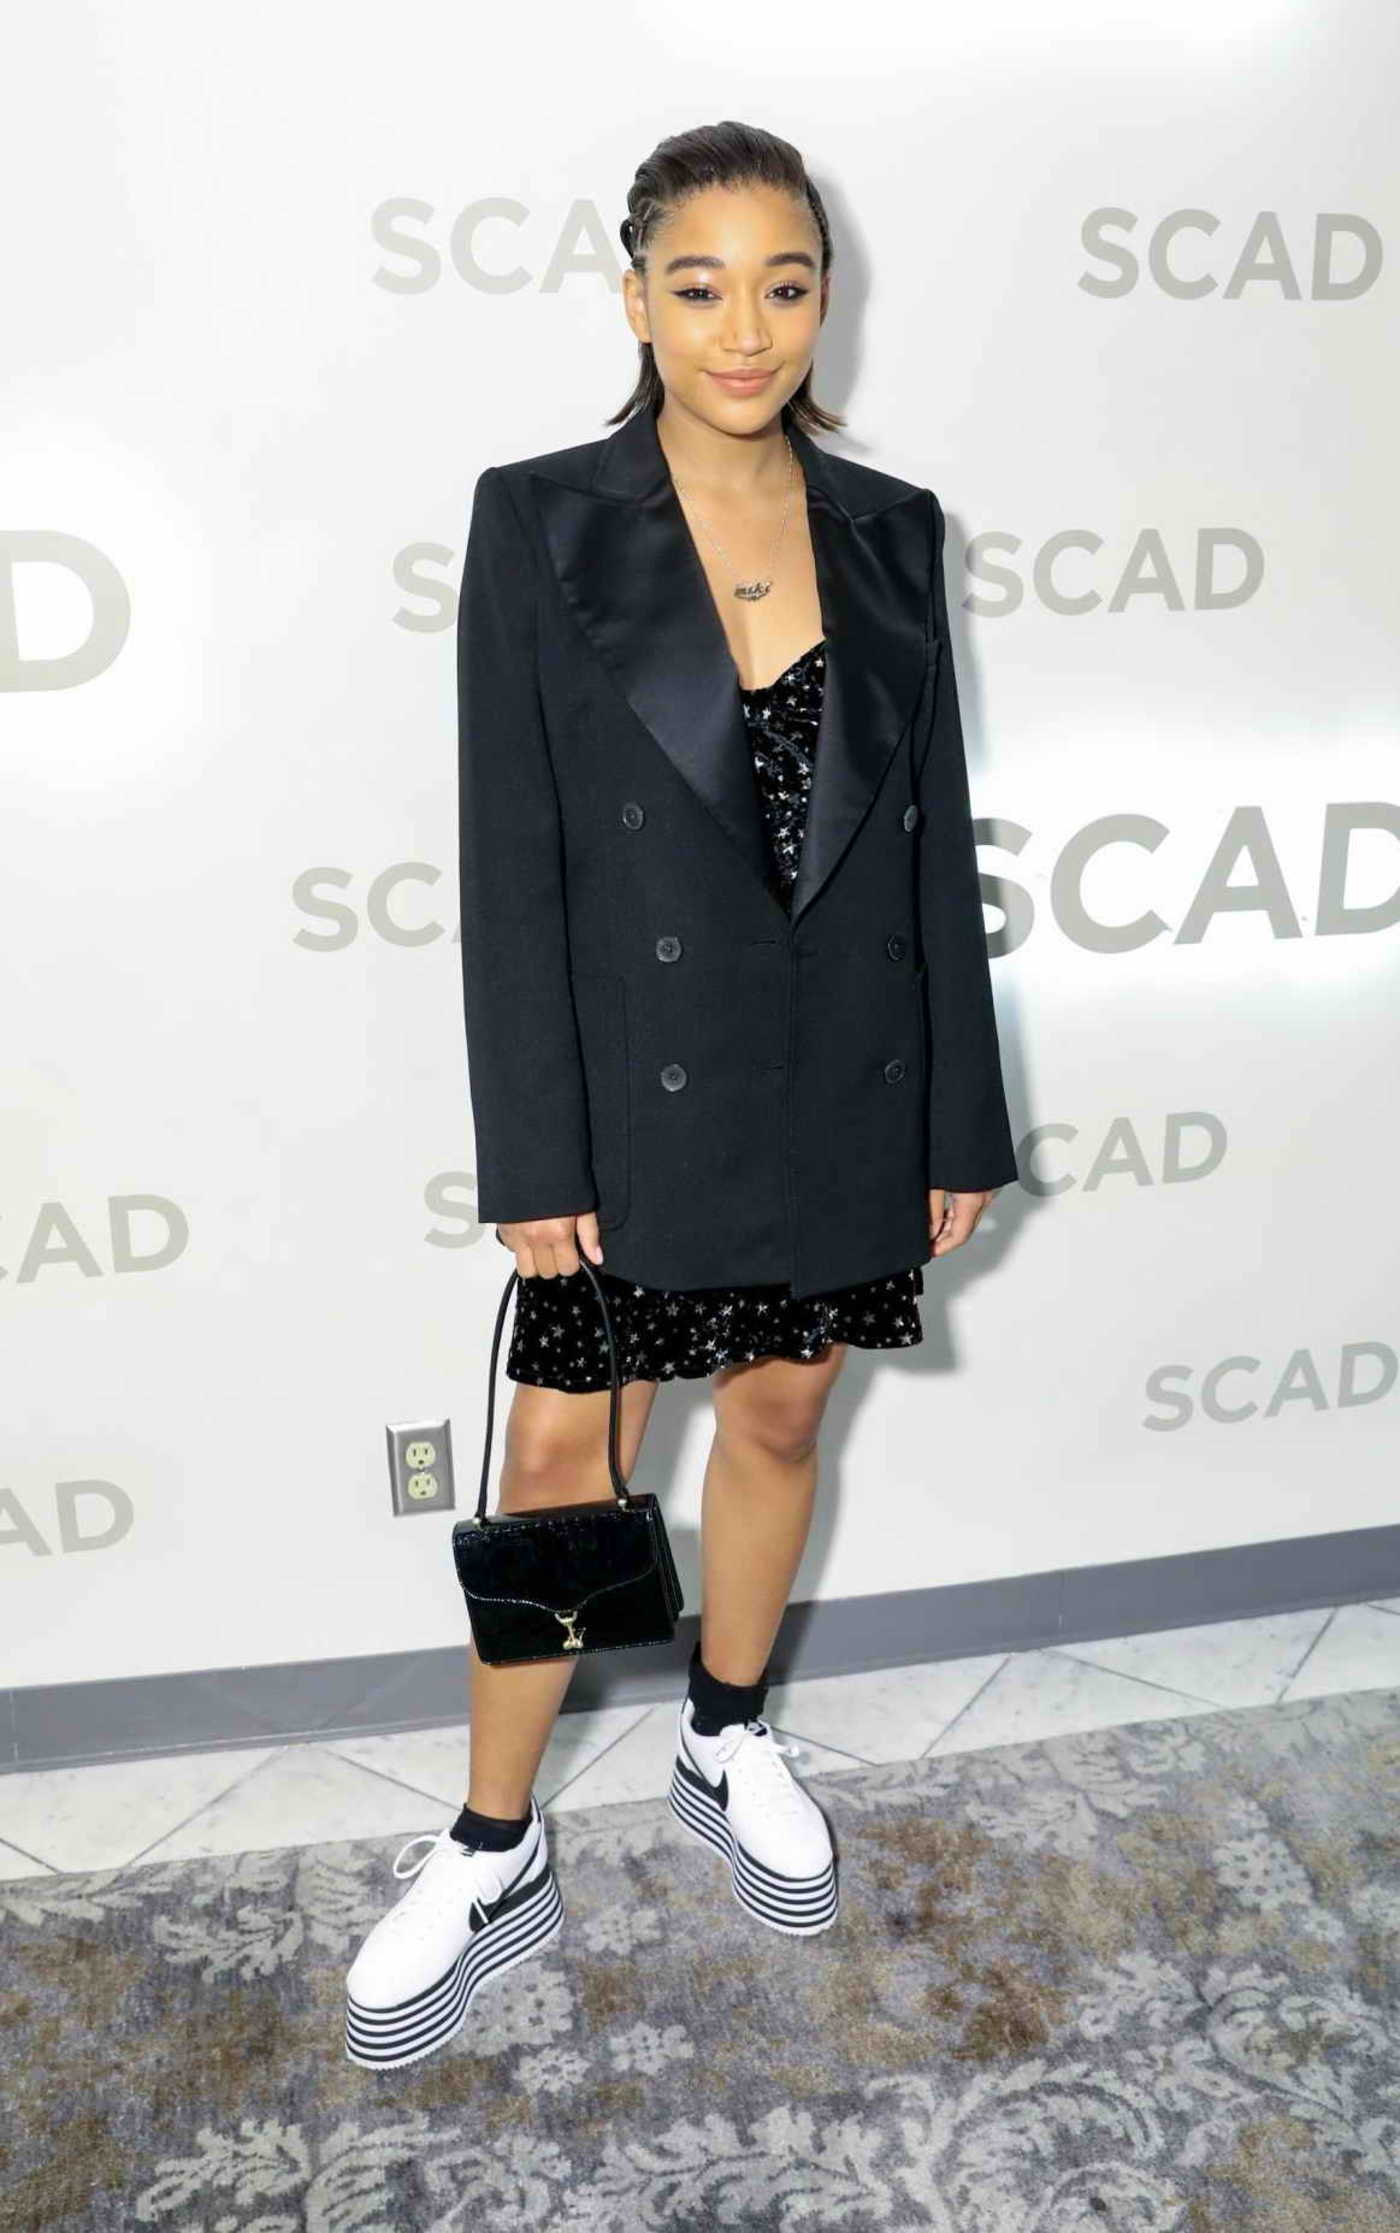 Amandla Stenberg Attends the Rising Star Award During the 21st SCAD Savannah Film Festival in Savannah 11/02/2018